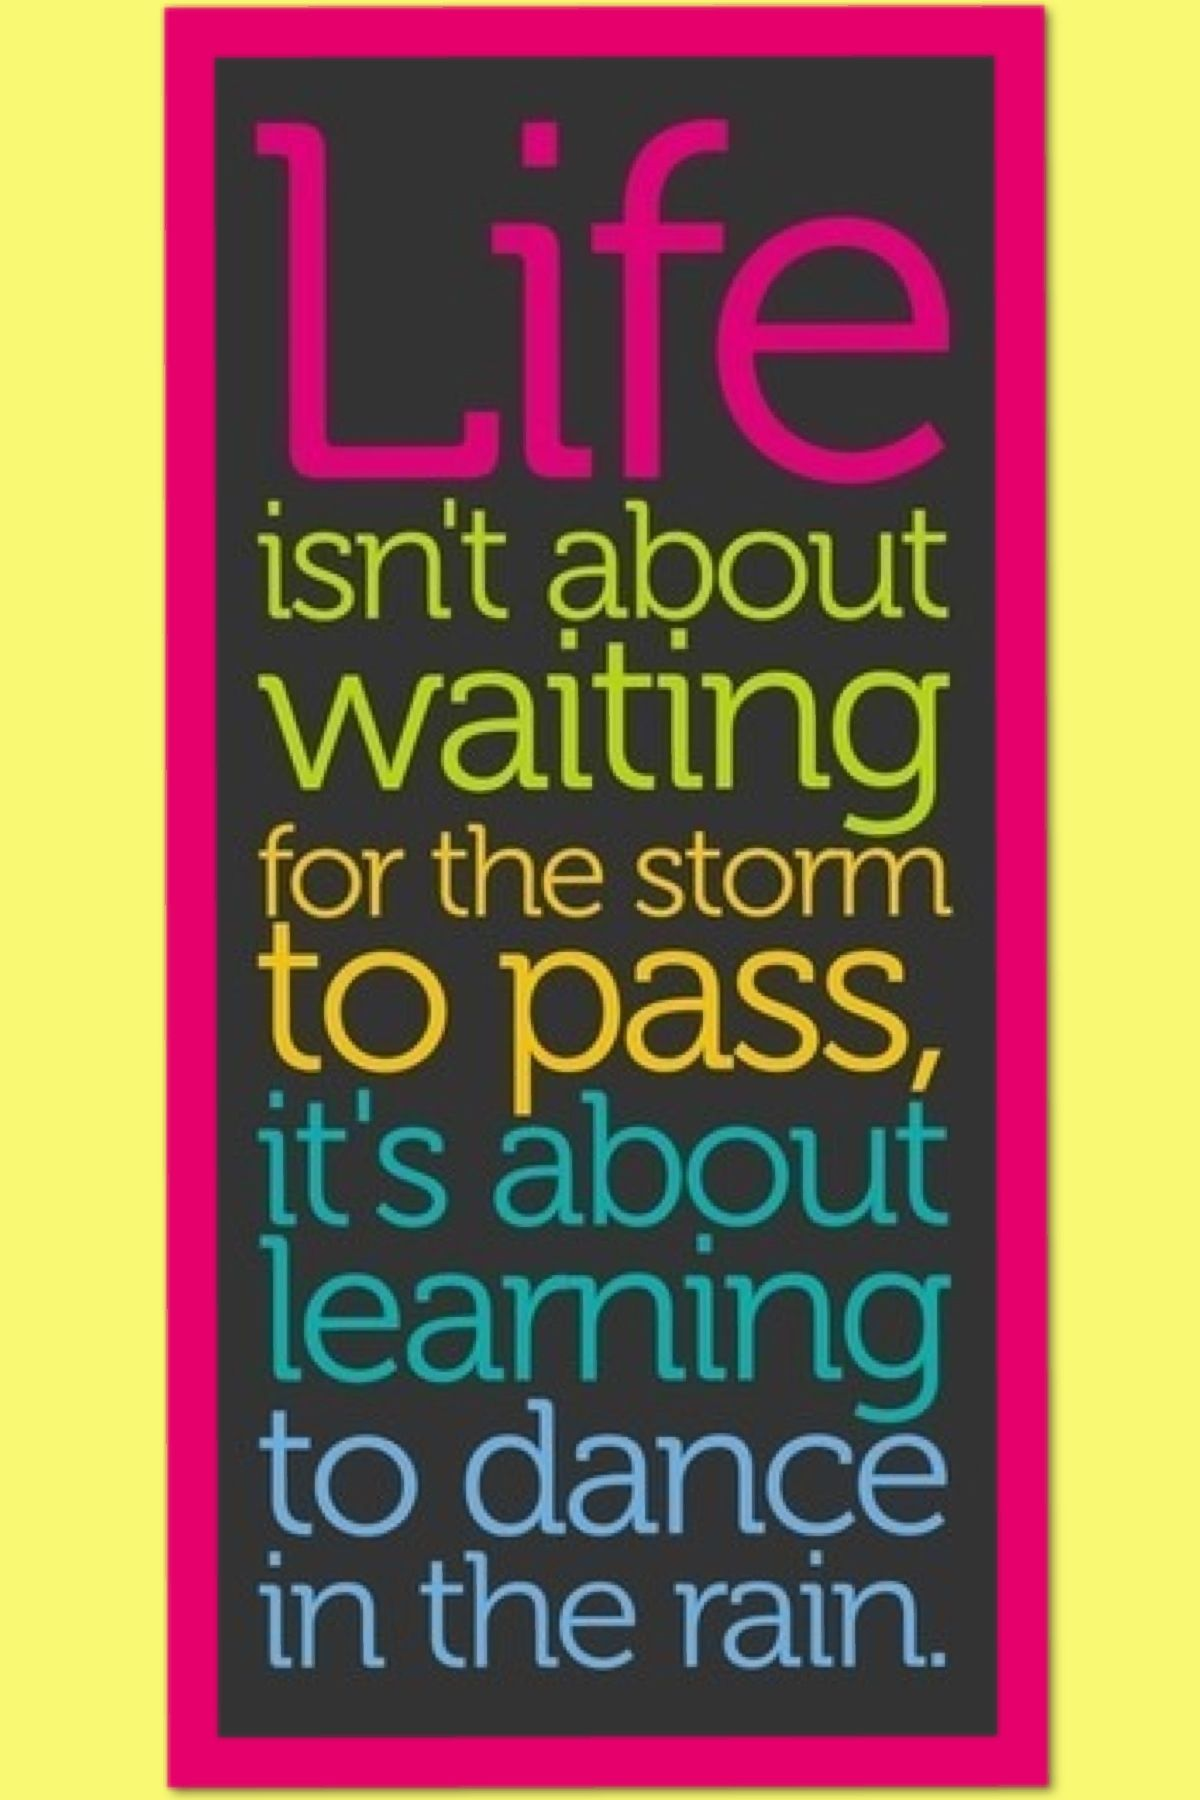 rain love quotes and sayings - photo #31